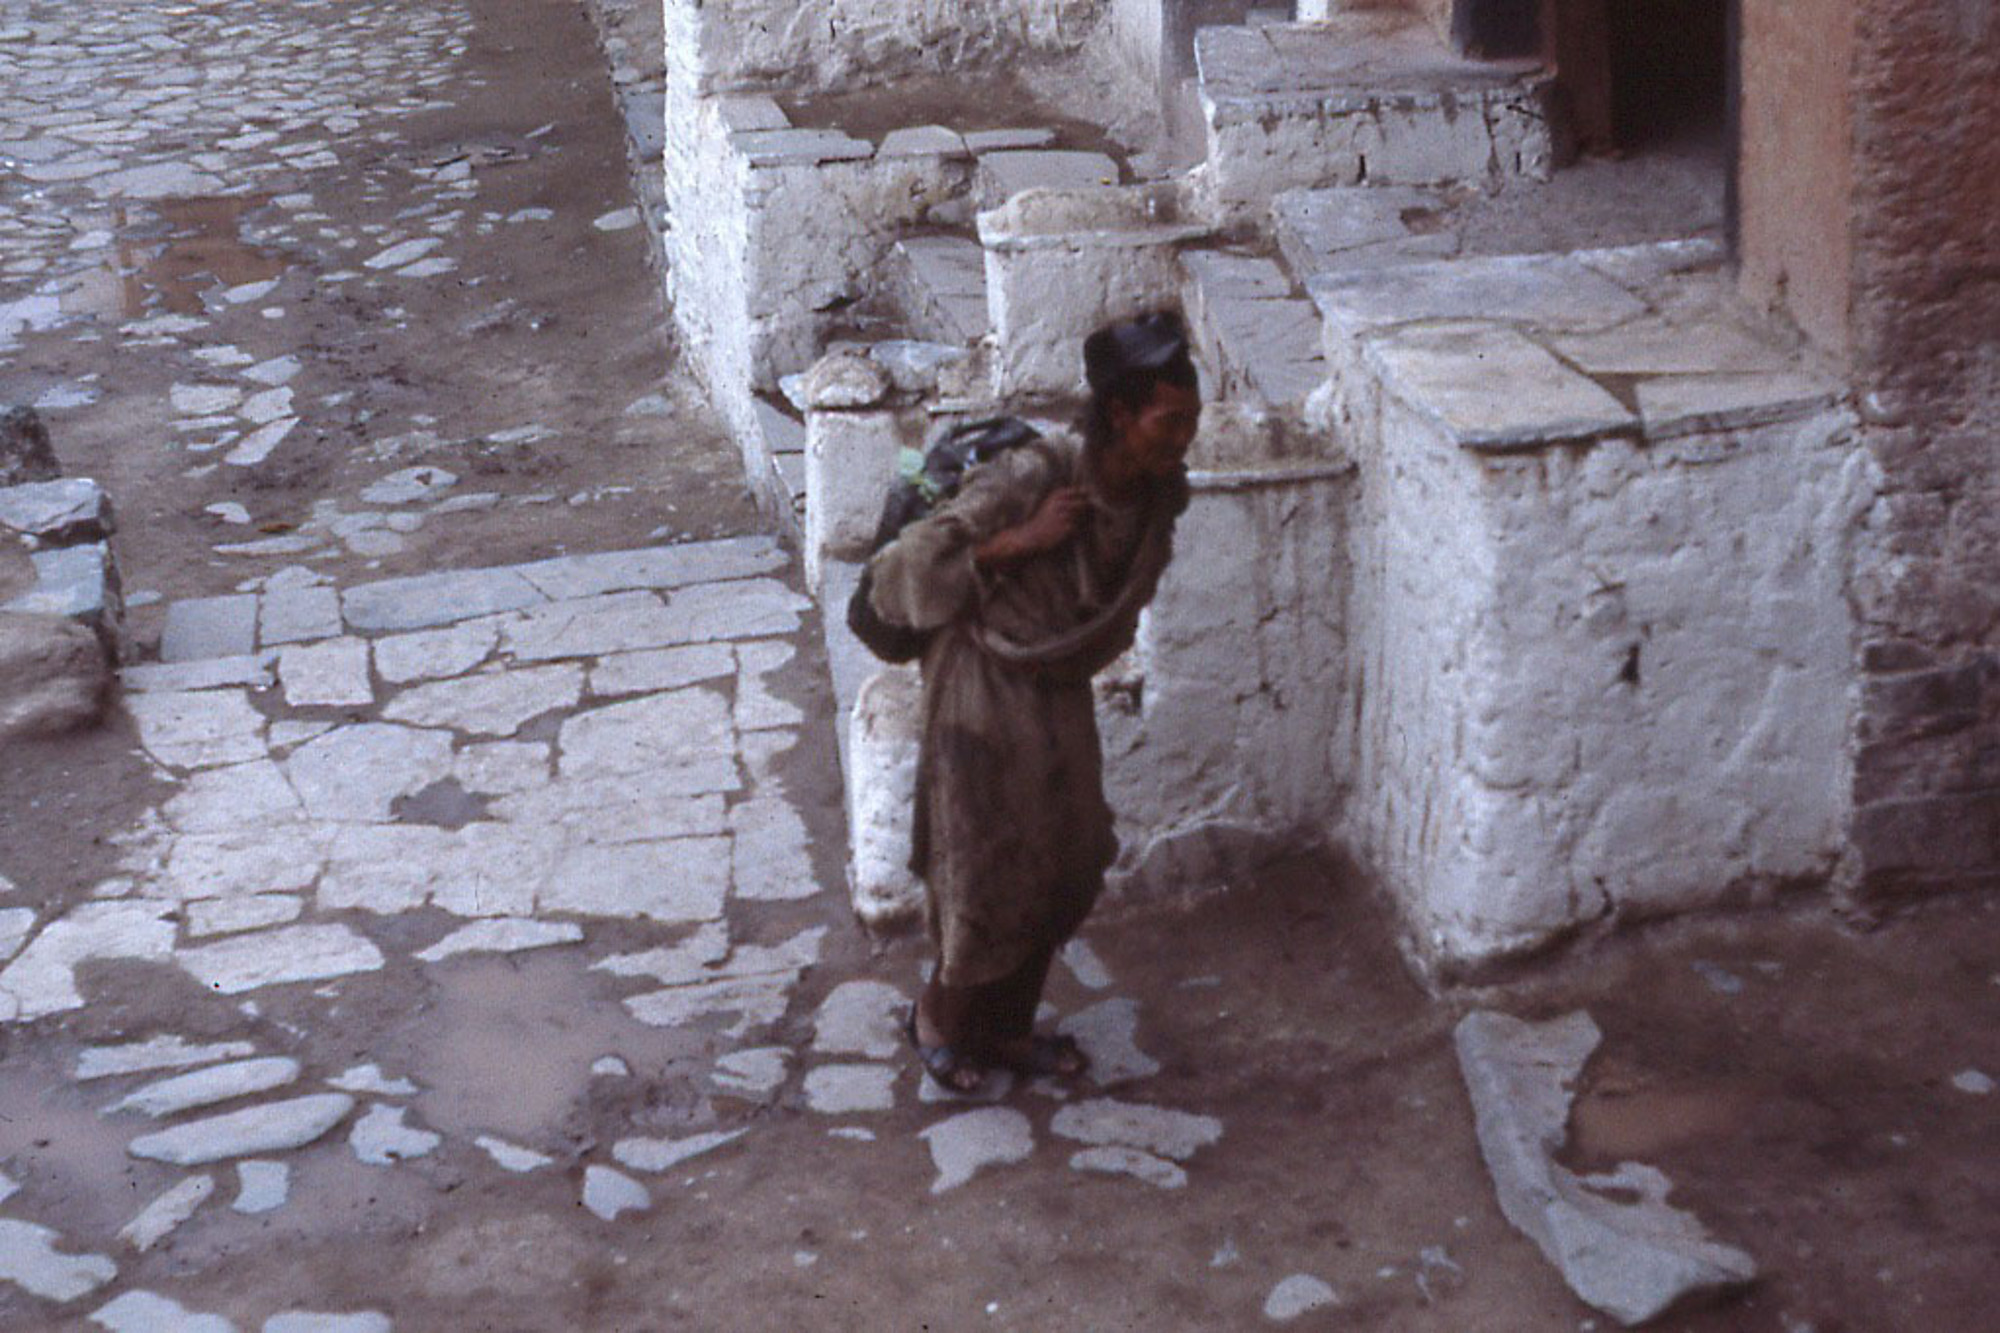 Film Studies of Traditional Tibetan Life and Culture: Ladakh, India, 1978 86.13.3-38OP 7/26/1978 (4p.m.)